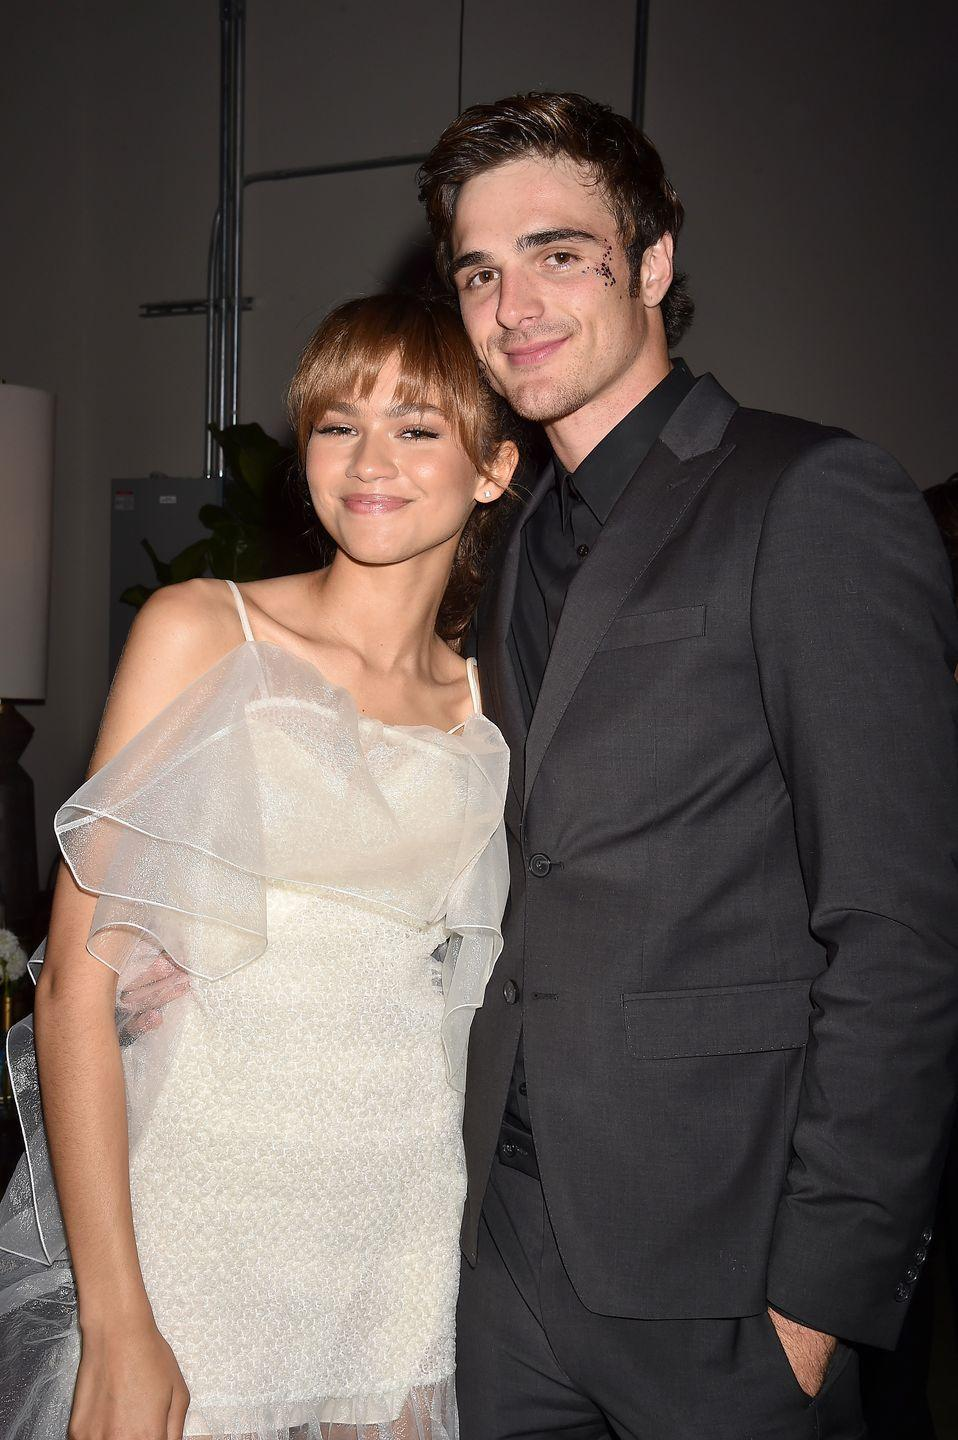 "<p><em>The Kissing Booth</em> fans were obviously thrilled when they found out costars Joey King and Jacob Elordi were a couple IRL. Fast forward to their <a href=""https://www.elle.com/culture/celebrities/a33586073/joey-king-jacob-elordi-kissing-booth-breakup-relationship-comments/"" rel=""nofollow noopener"" target=""_blank"" data-ylk=""slk:awkward breakup"" class=""link rapid-noclick-resp"">awkward breakup</a> and <a href=""https://www.elle.com/uk/life-and-culture/culture/a30761276/zendaya-jacob-elordi/"" rel=""nofollow noopener"" target=""_blank"" data-ylk=""slk:rumors that Jacob had moved on"" class=""link rapid-noclick-resp"">rumors that Jacob had moved on</a> with his <em>Euphoria</em> costar, Zendaya. Some took it a step further by <a href=""https://www.popbuzz.com/tv-film/the-kissing-booth/2-jacob-elordi-joey-king-meme-trailer/"" rel=""nofollow noopener"" target=""_blank"" data-ylk=""slk:speculating that Jacob &quot;looked miserable&quot;"" class=""link rapid-noclick-resp"">speculating that Jacob ""looked miserable""</a> in <em>The Kissing Booth 2</em> with his ex. </p>"